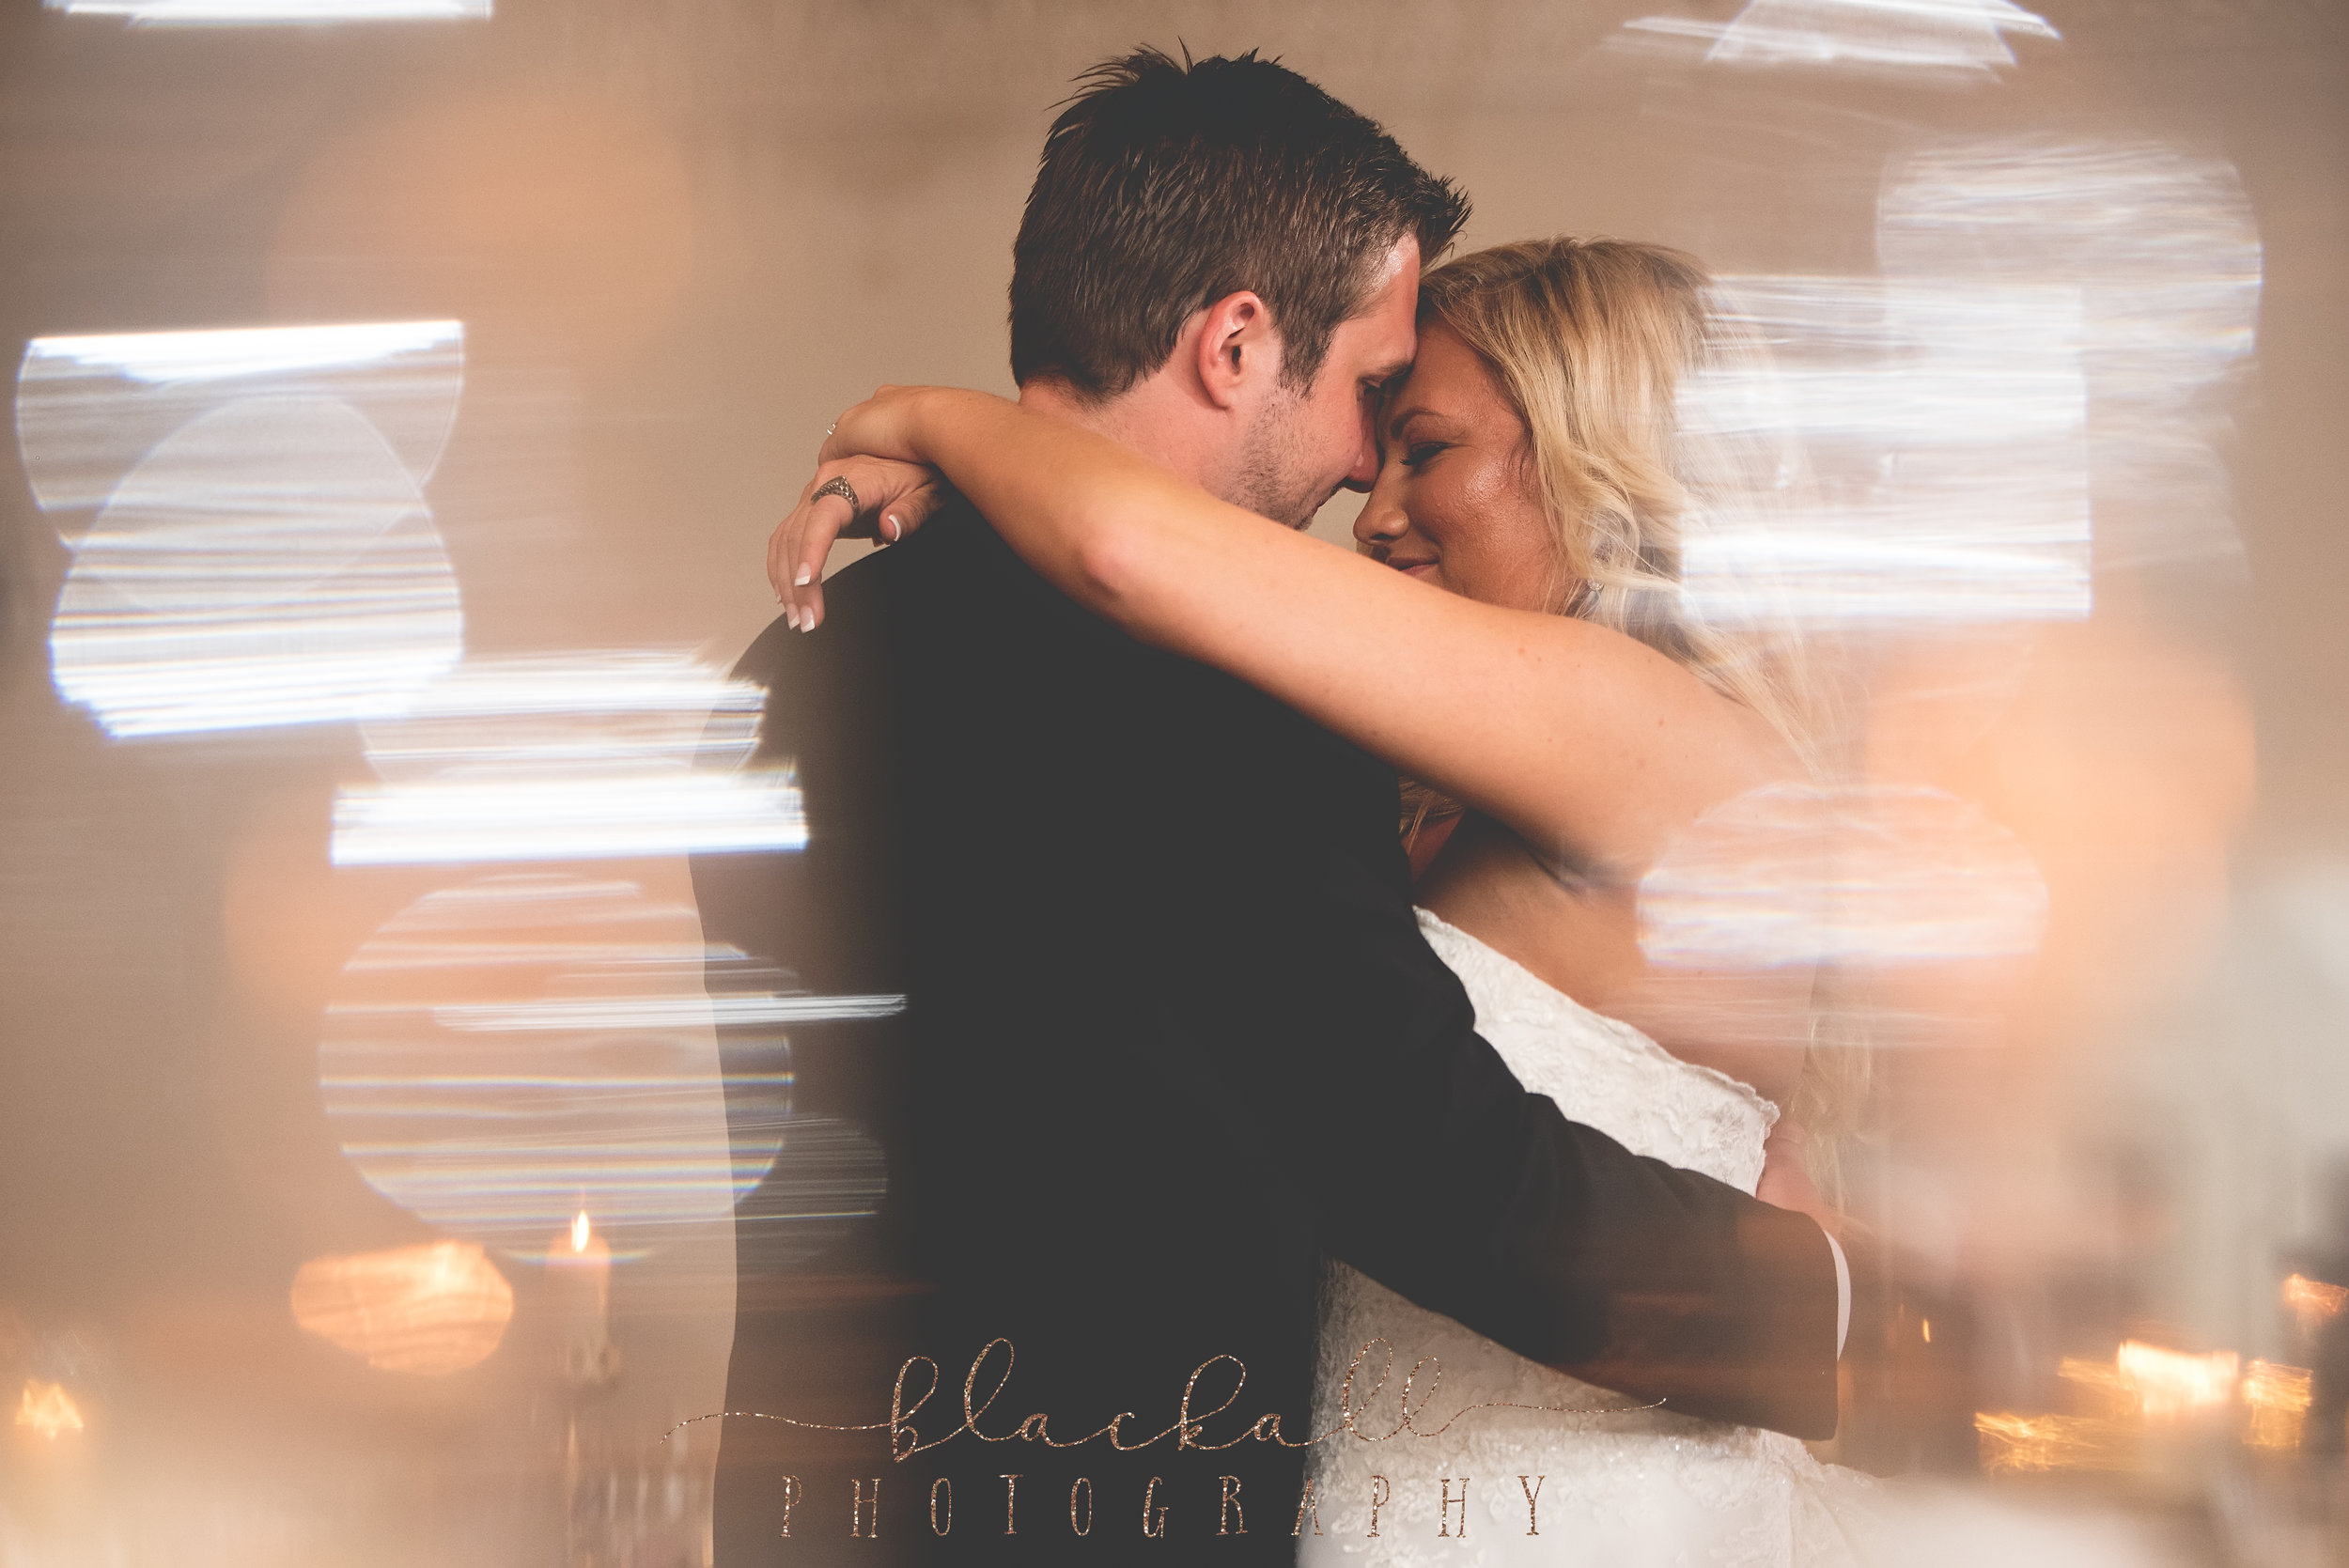 WEDDING_BlackallPhotography_61.JPG